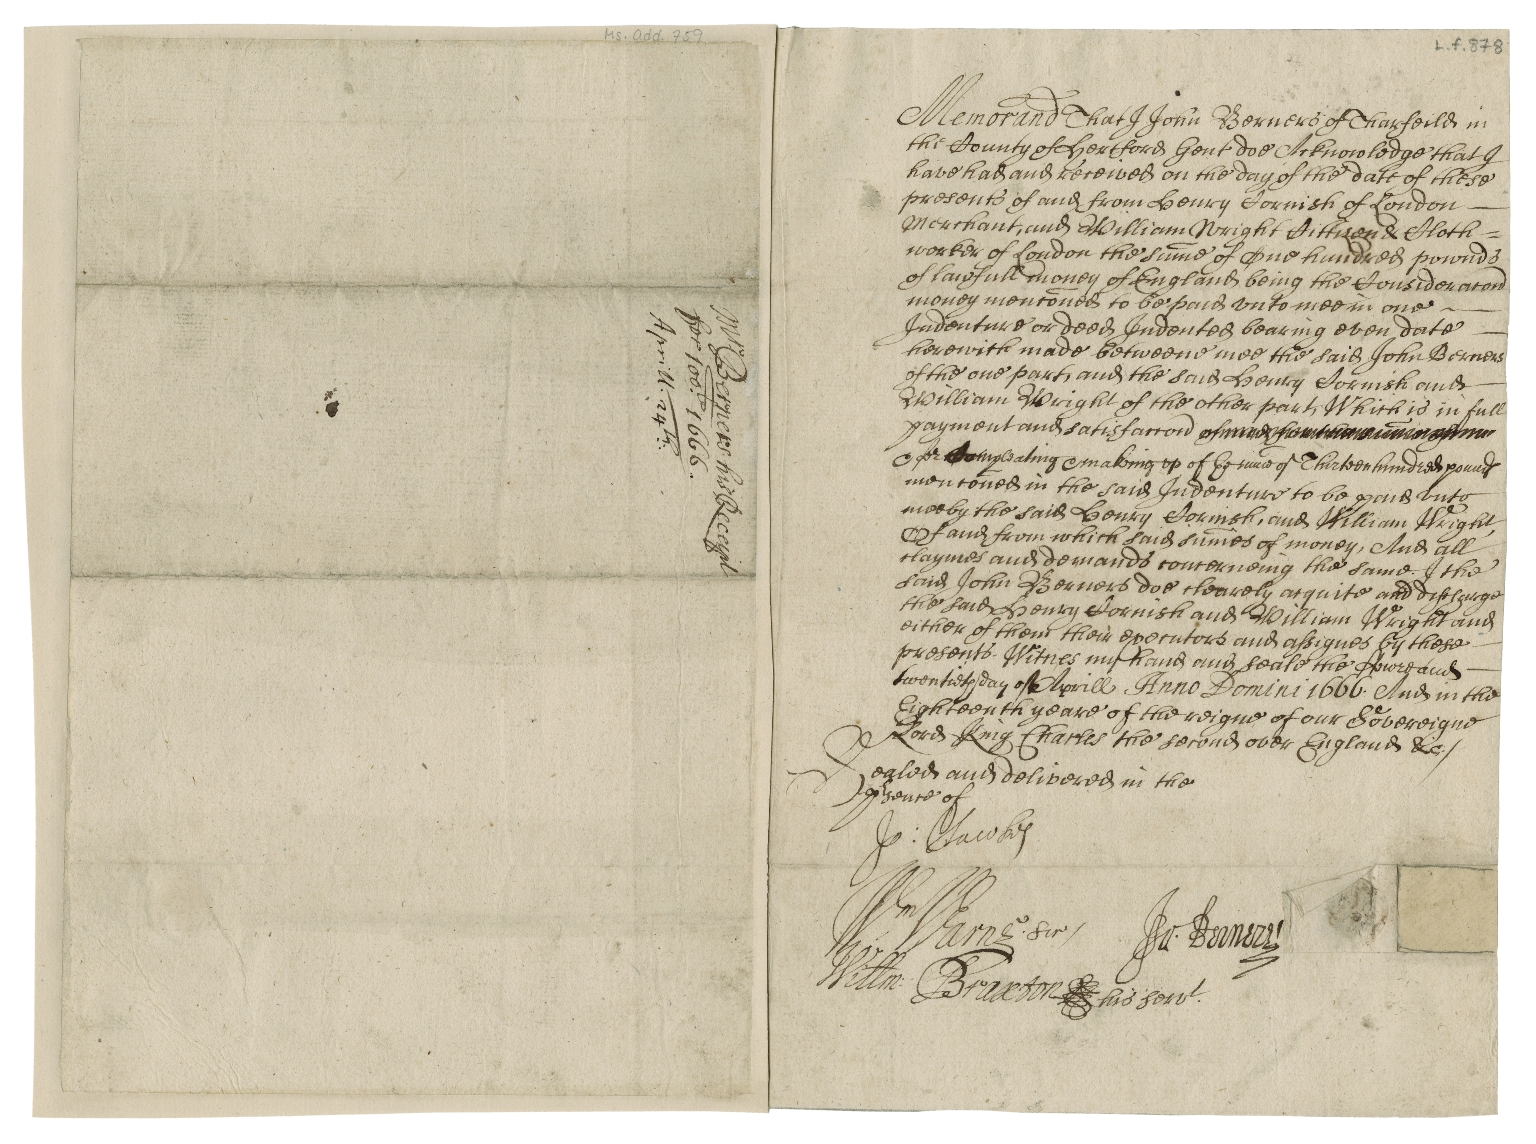 Acquittance from John Berners of Therfield, Hertfordshire to Henry Cornish, merchant of London, and William Wright, citizen and clothworker of London